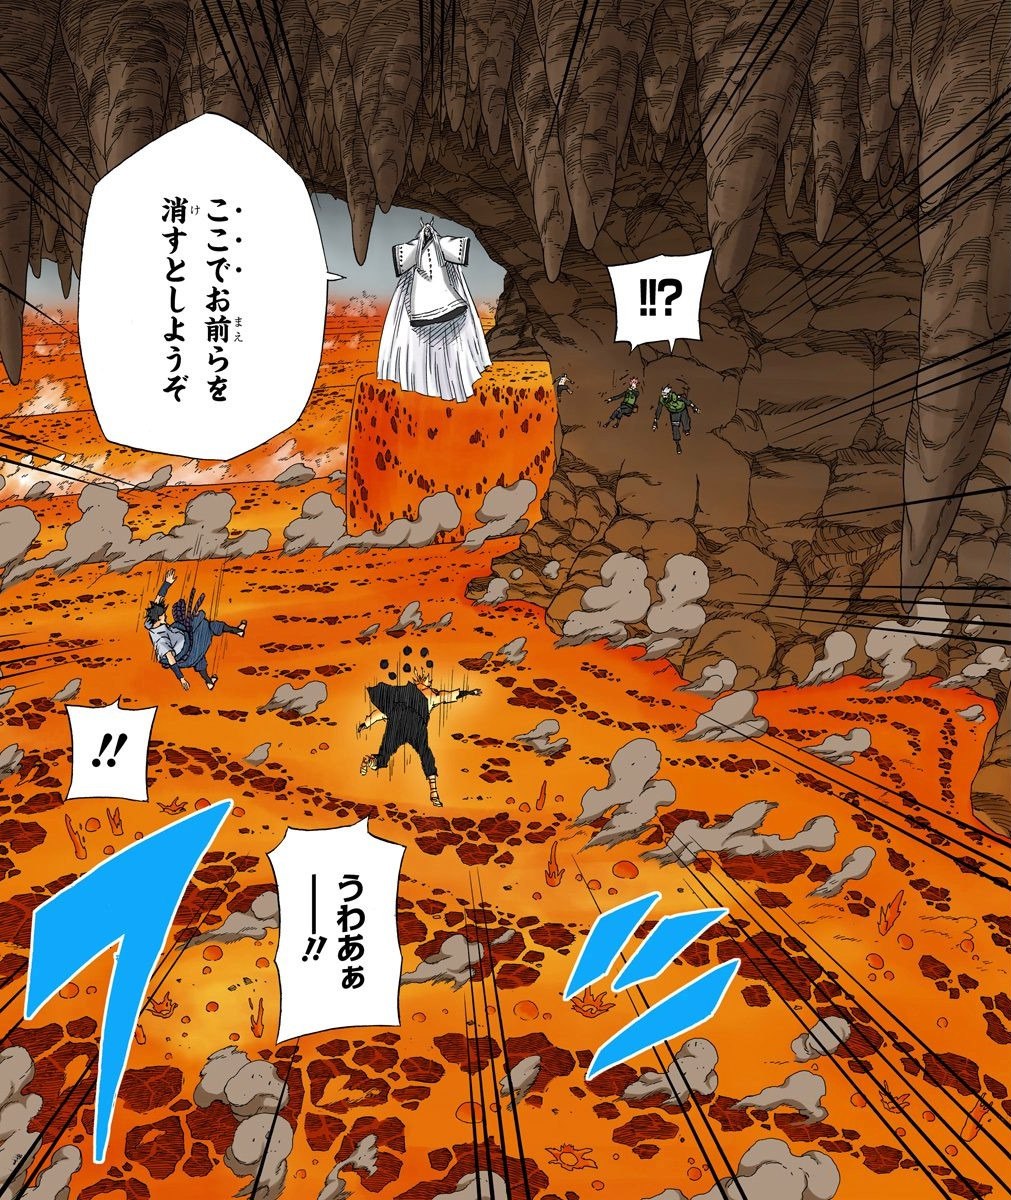 Kaguya Vs Madara Jin e Obito Jin - Página 2 Latest?cb=20150731185842&path-prefix=pt-br